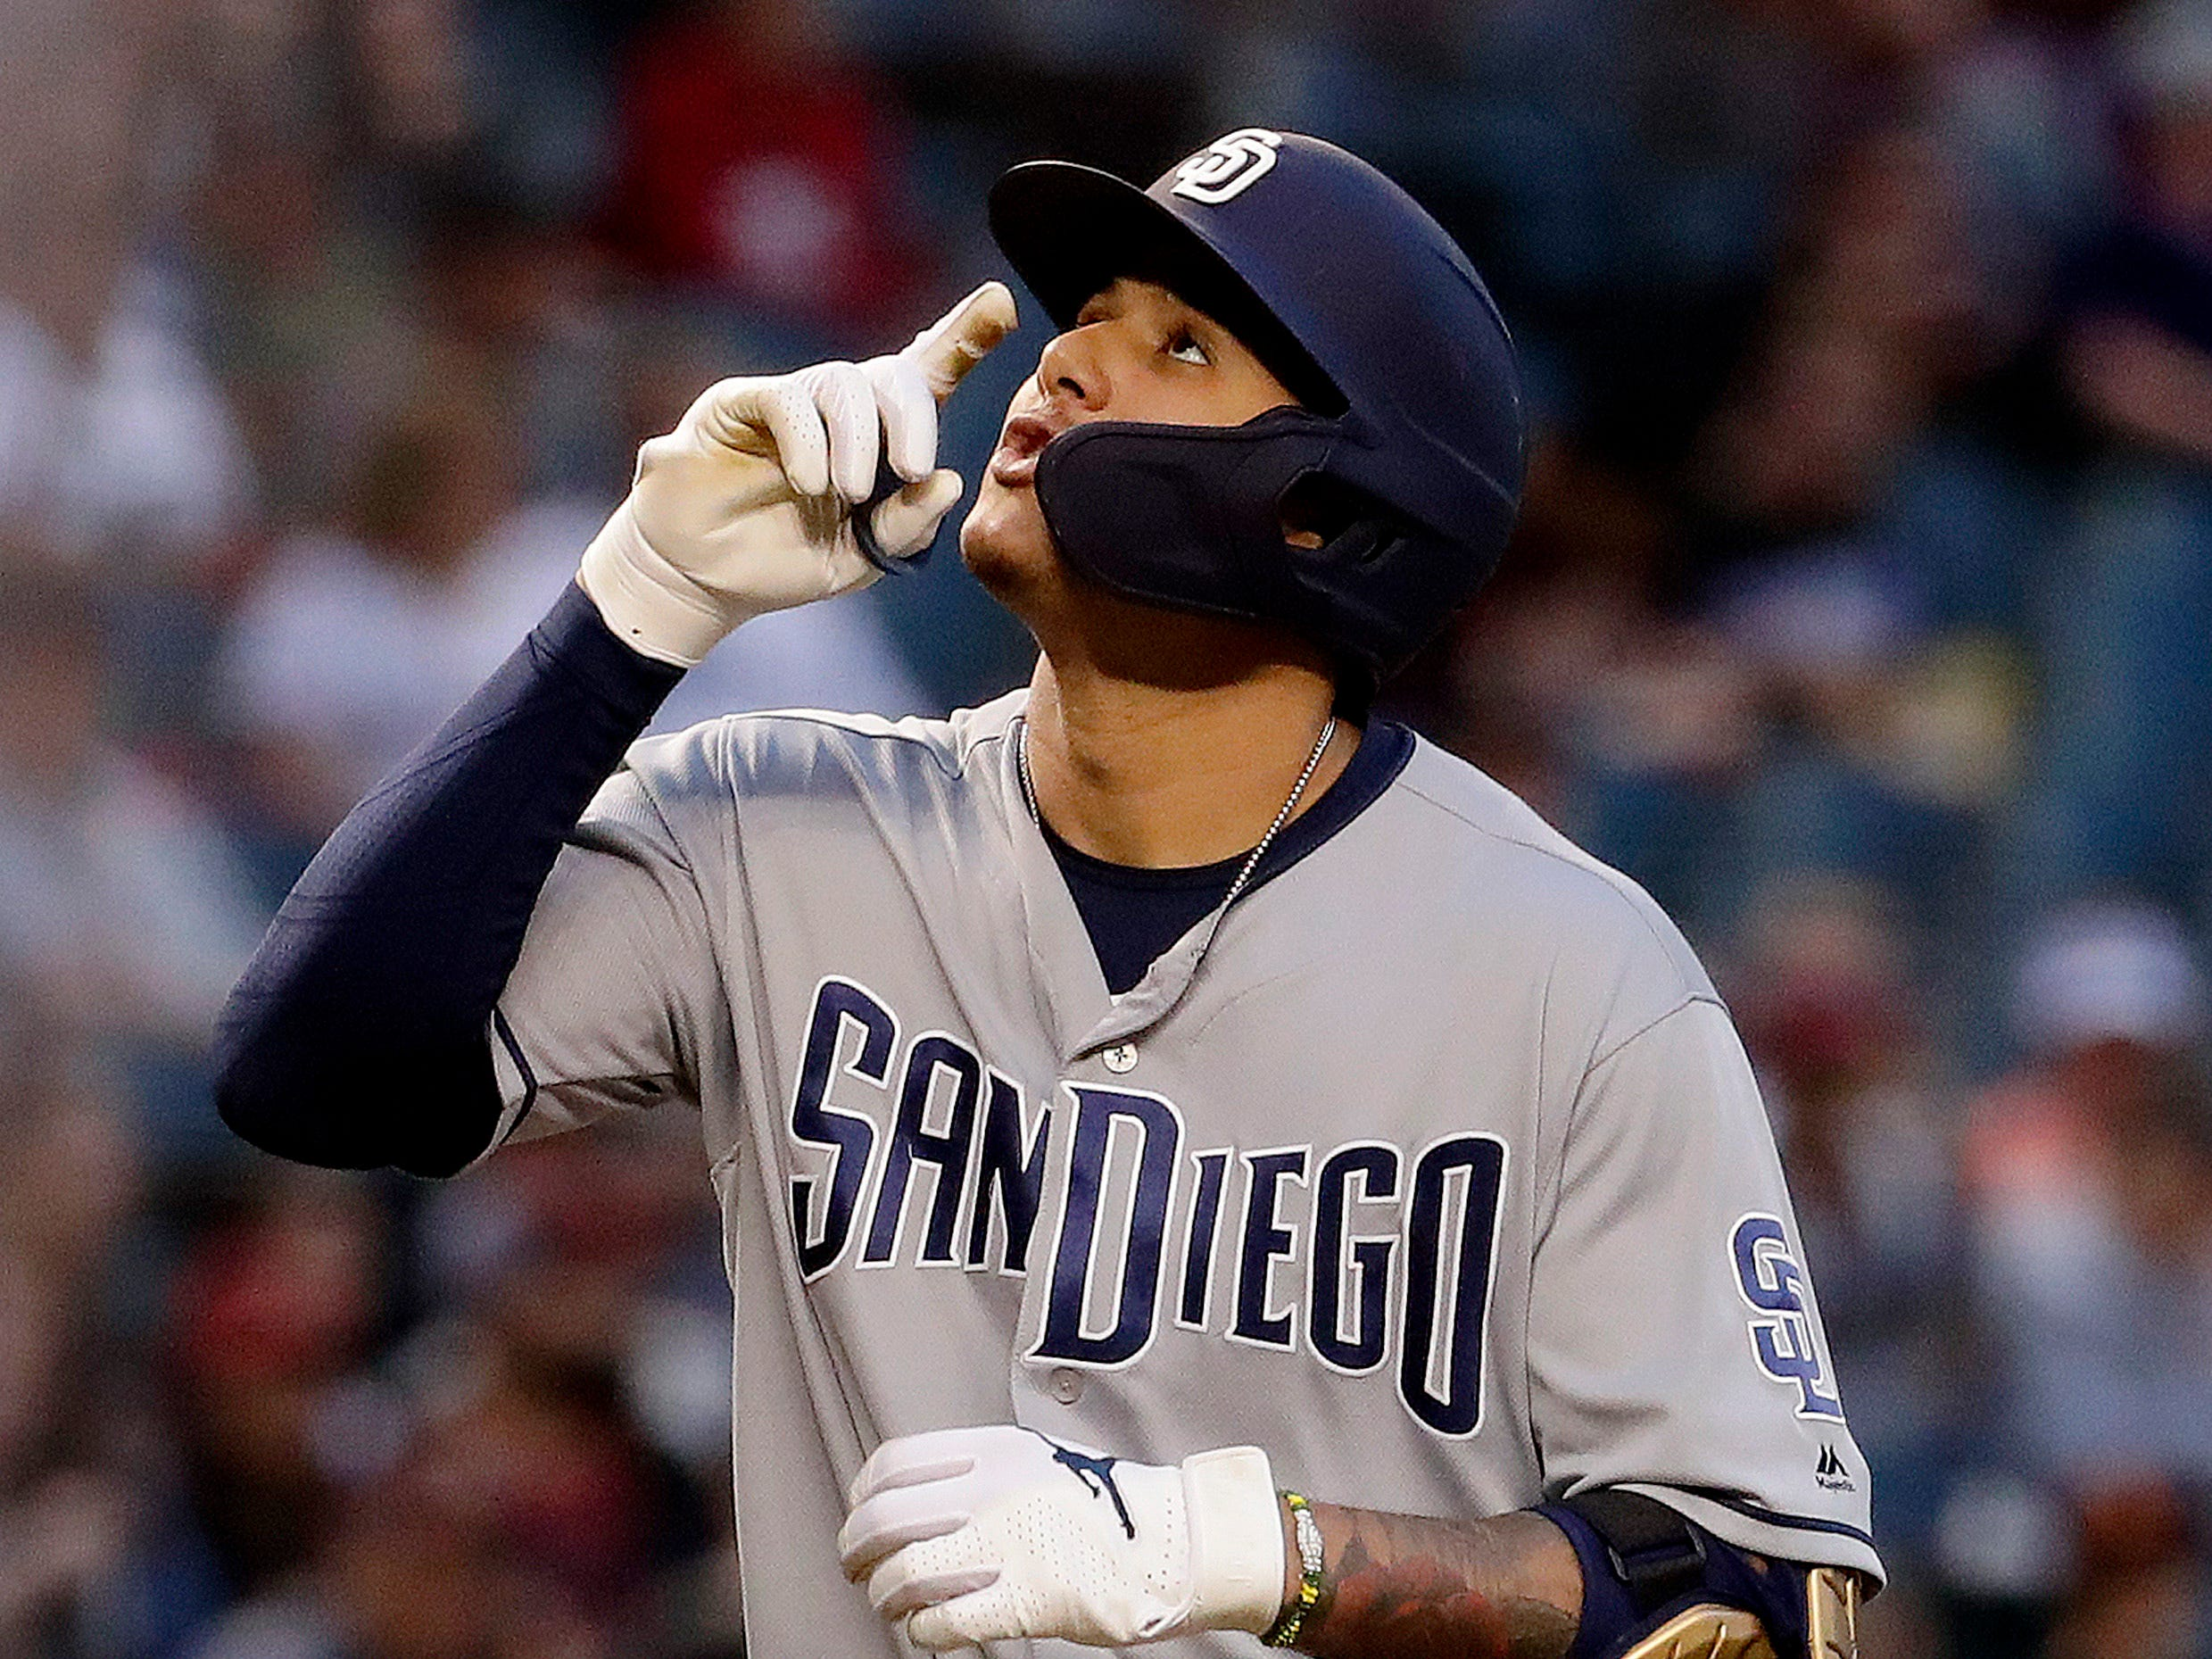 San Diego Padres' Manny Machado celebrates his solo home run against the Arizona Diamondbacks during the first inning of a baseball game Friday, April 12, 2019, in Phoenix. (AP Photo/Matt York)